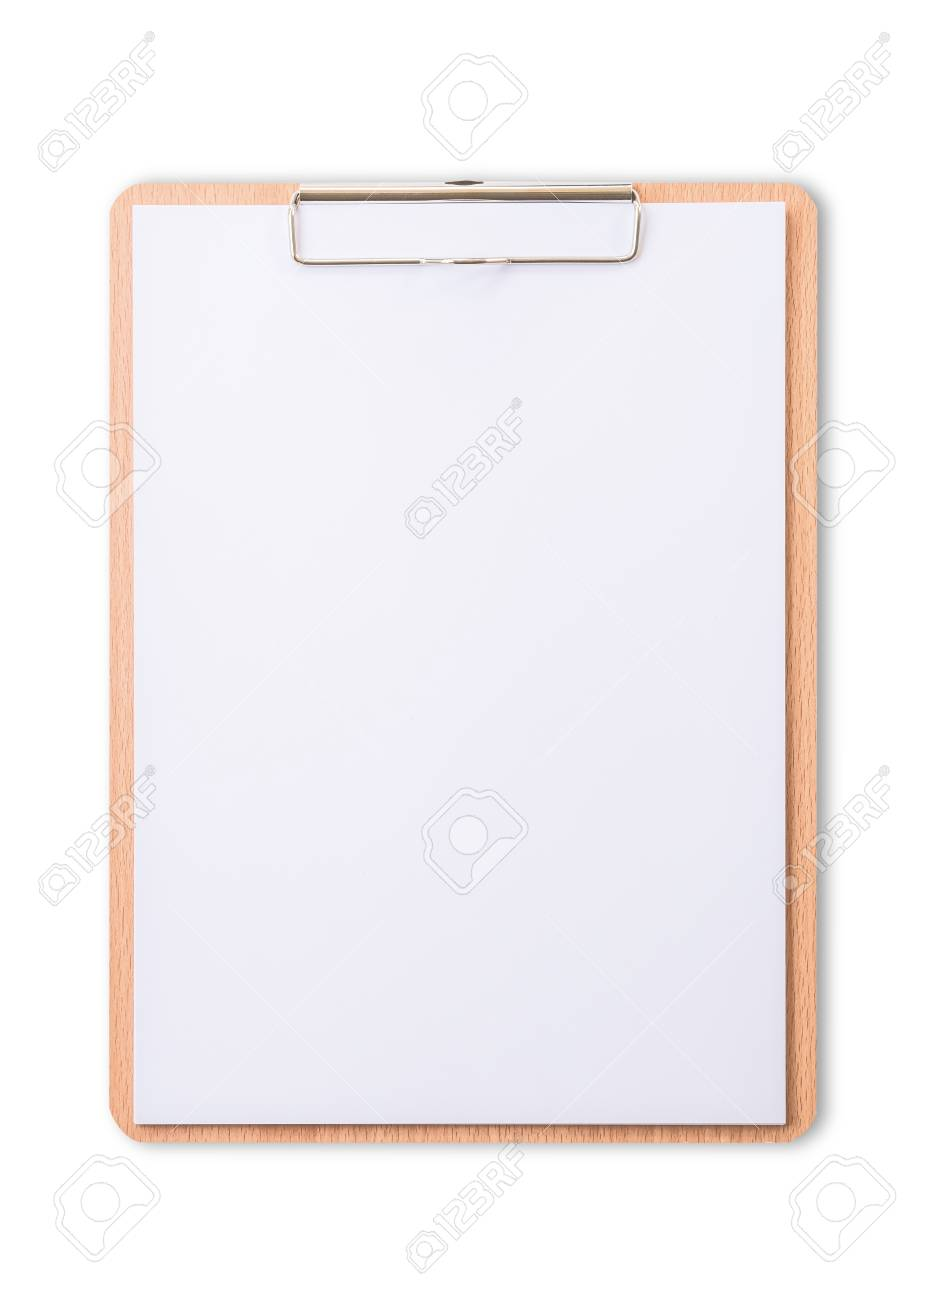 Clipboard note pad mock up with blank A4 size white page paper isolated on white background for business and education mockup template - 119067851